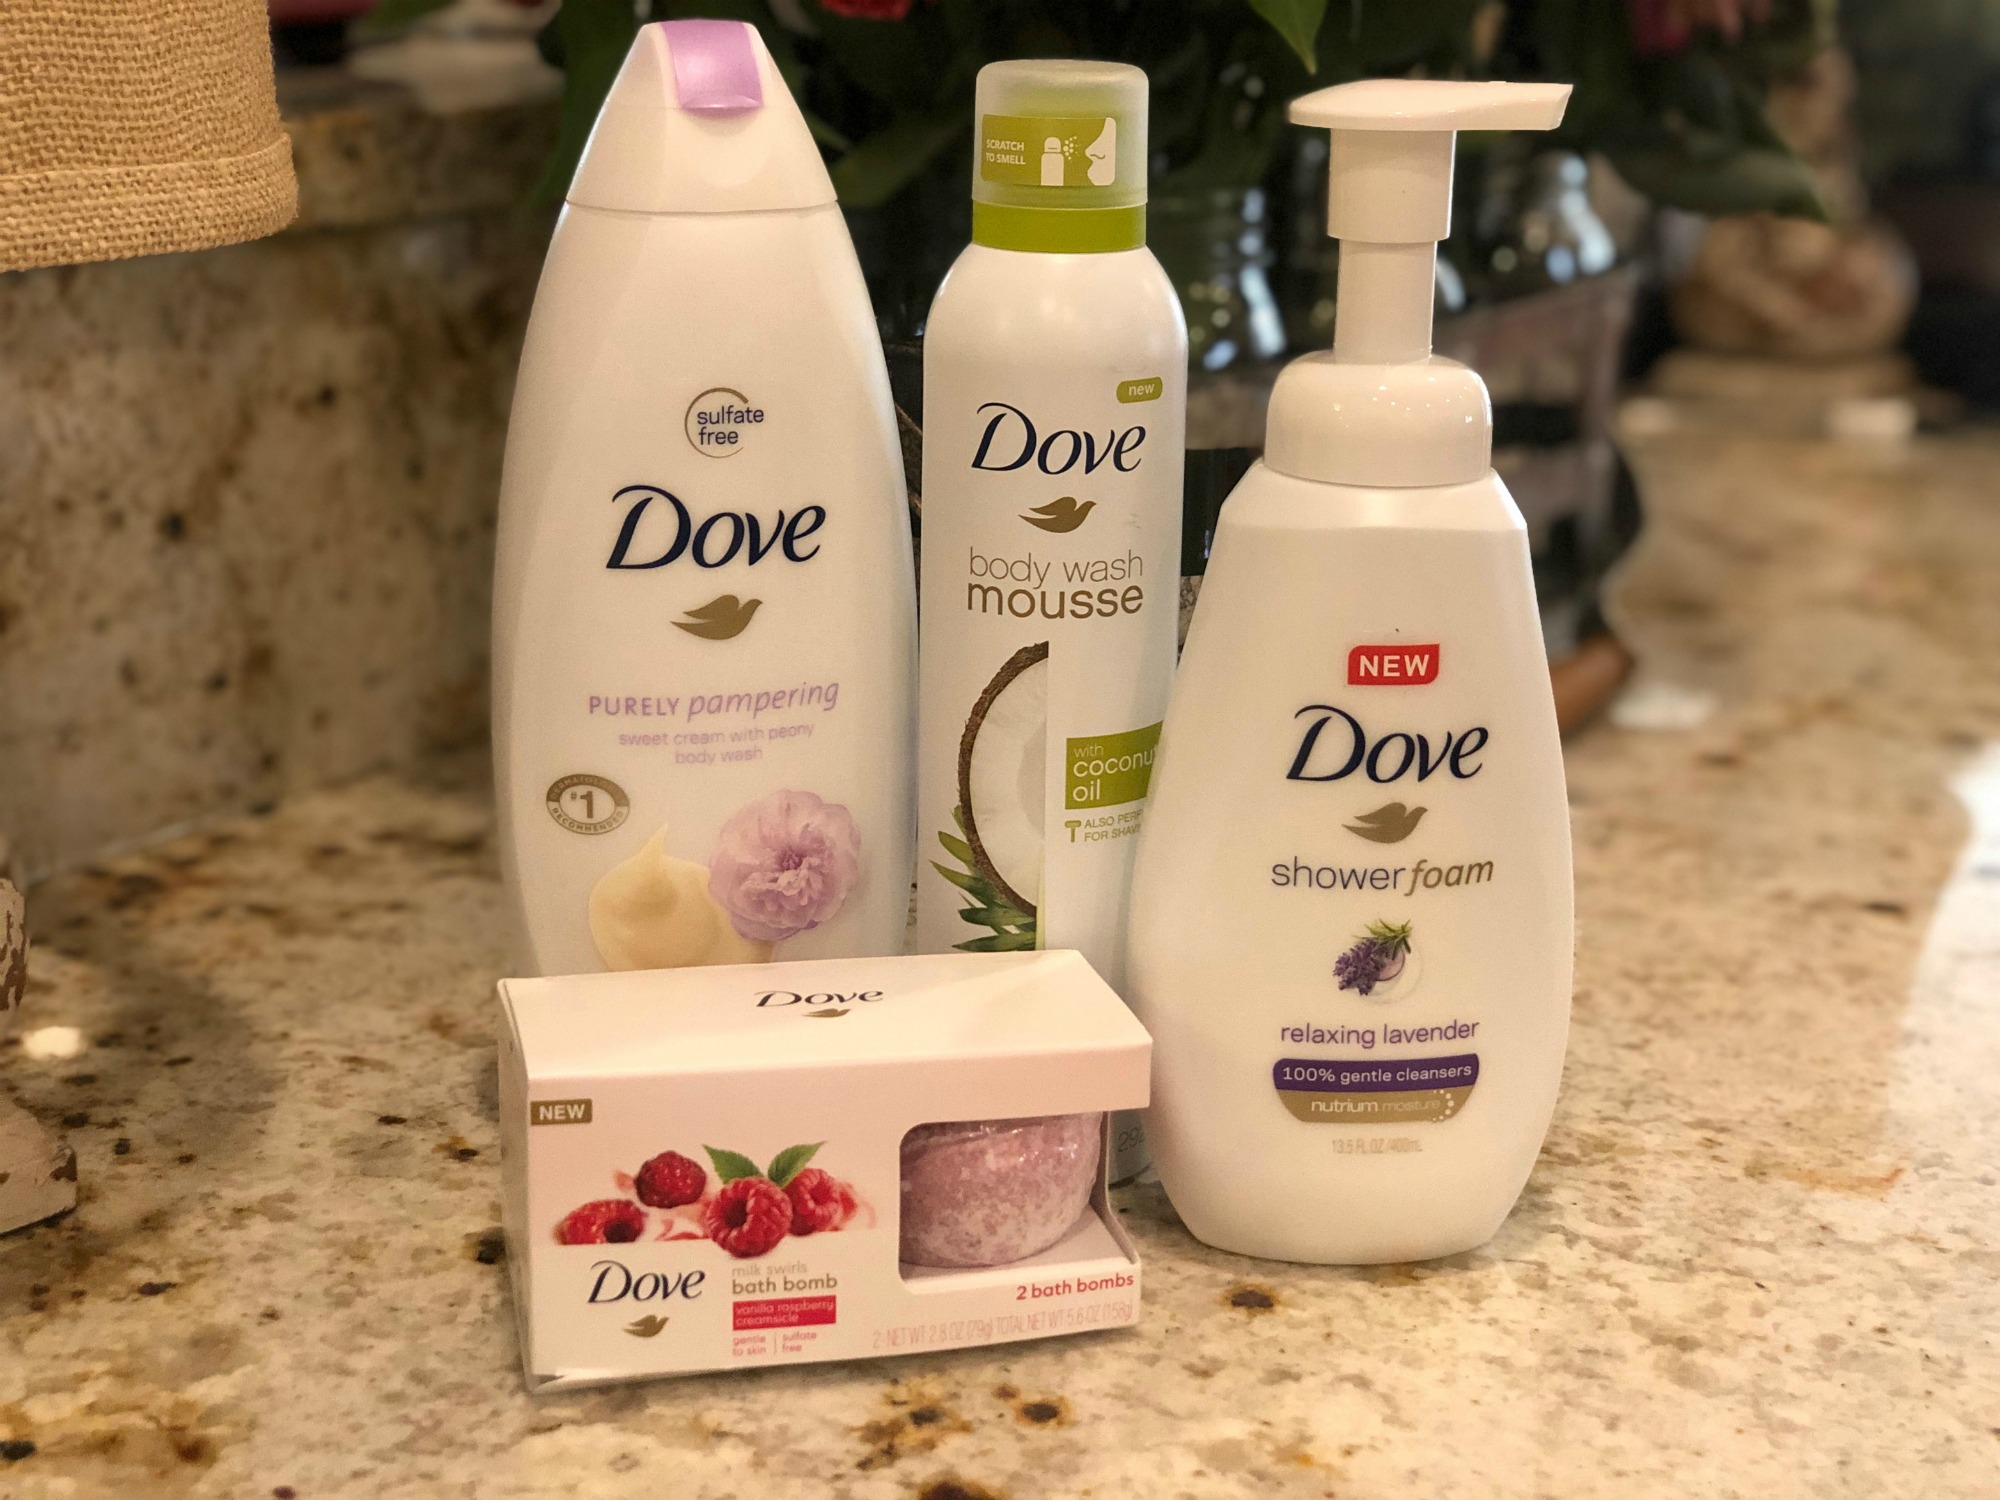 Pick Up Big Savings On Your Favorite Dove Cleansers At Publix With The New Coupon